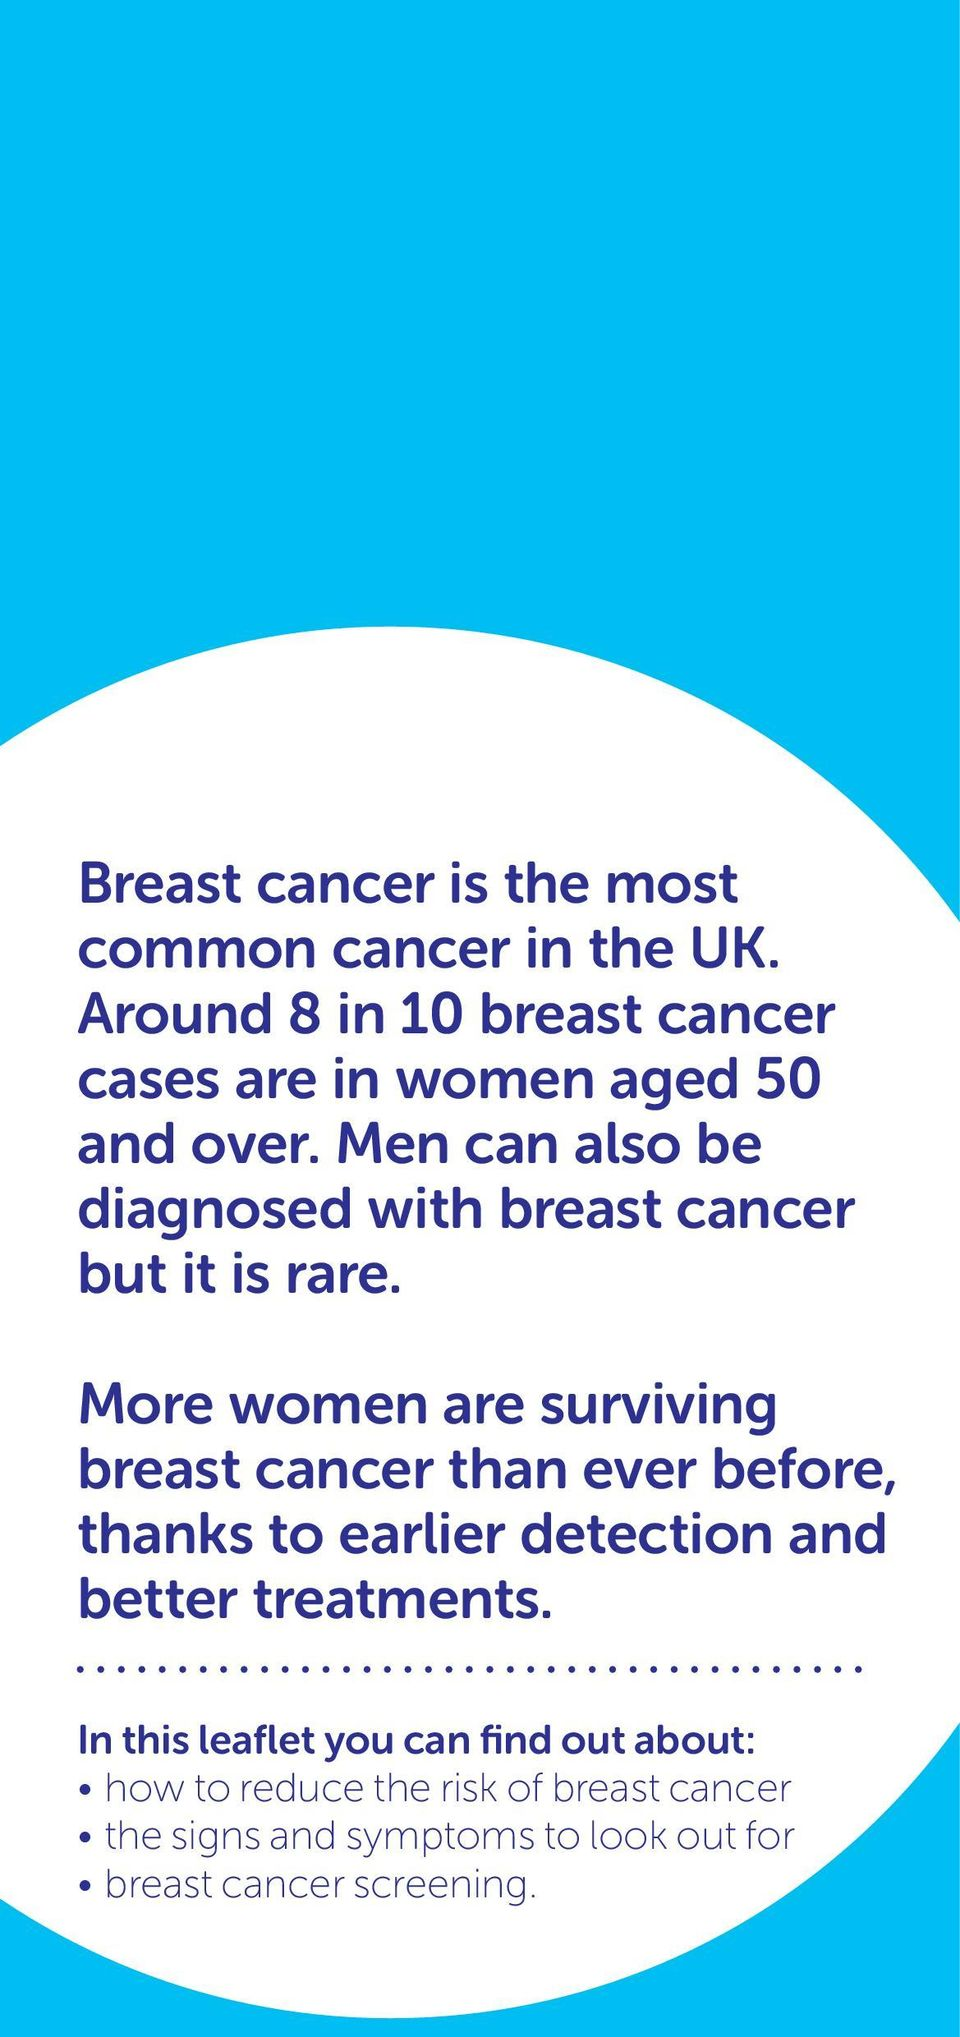 Men can also be diagnosed with breast cancer but it is rare.